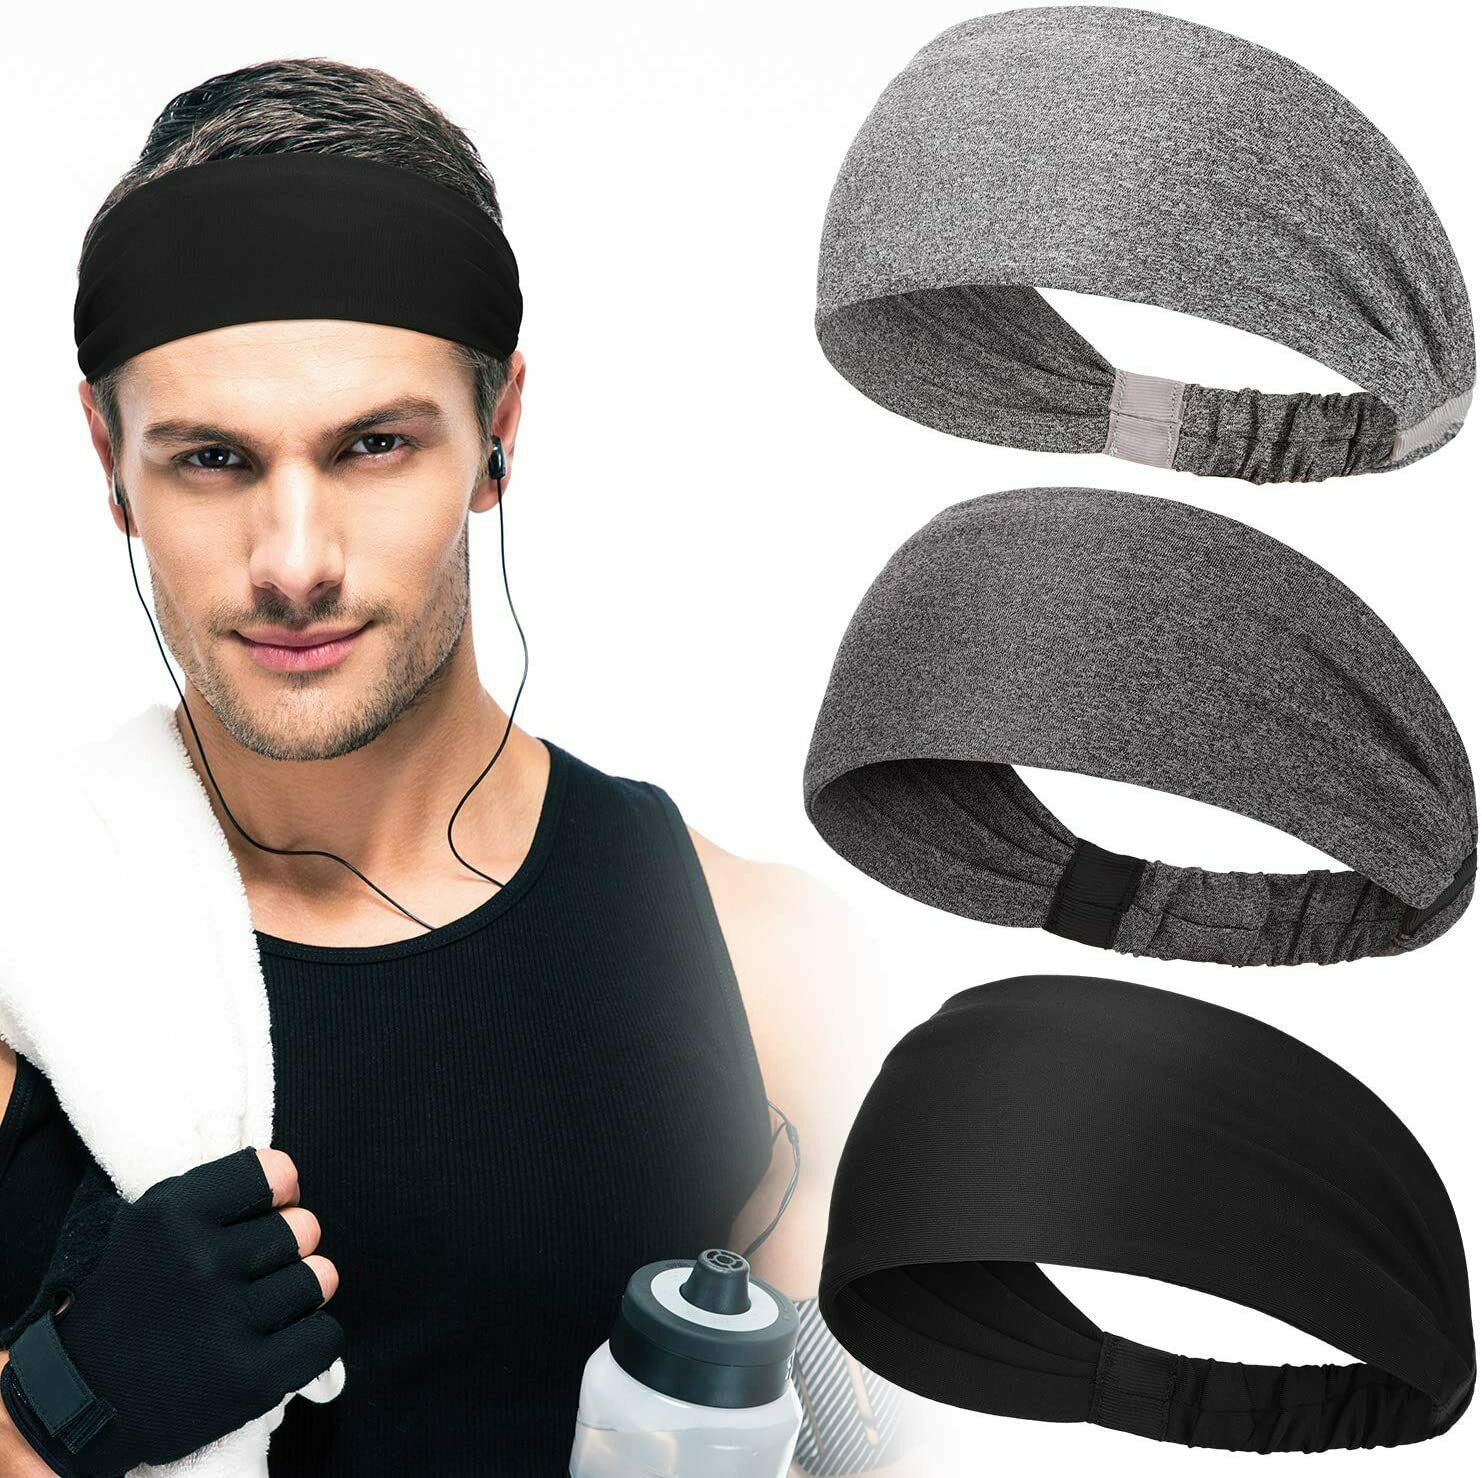 Hair Headband Sweatband Men Elastic Head Band Stretch Wrap Sport